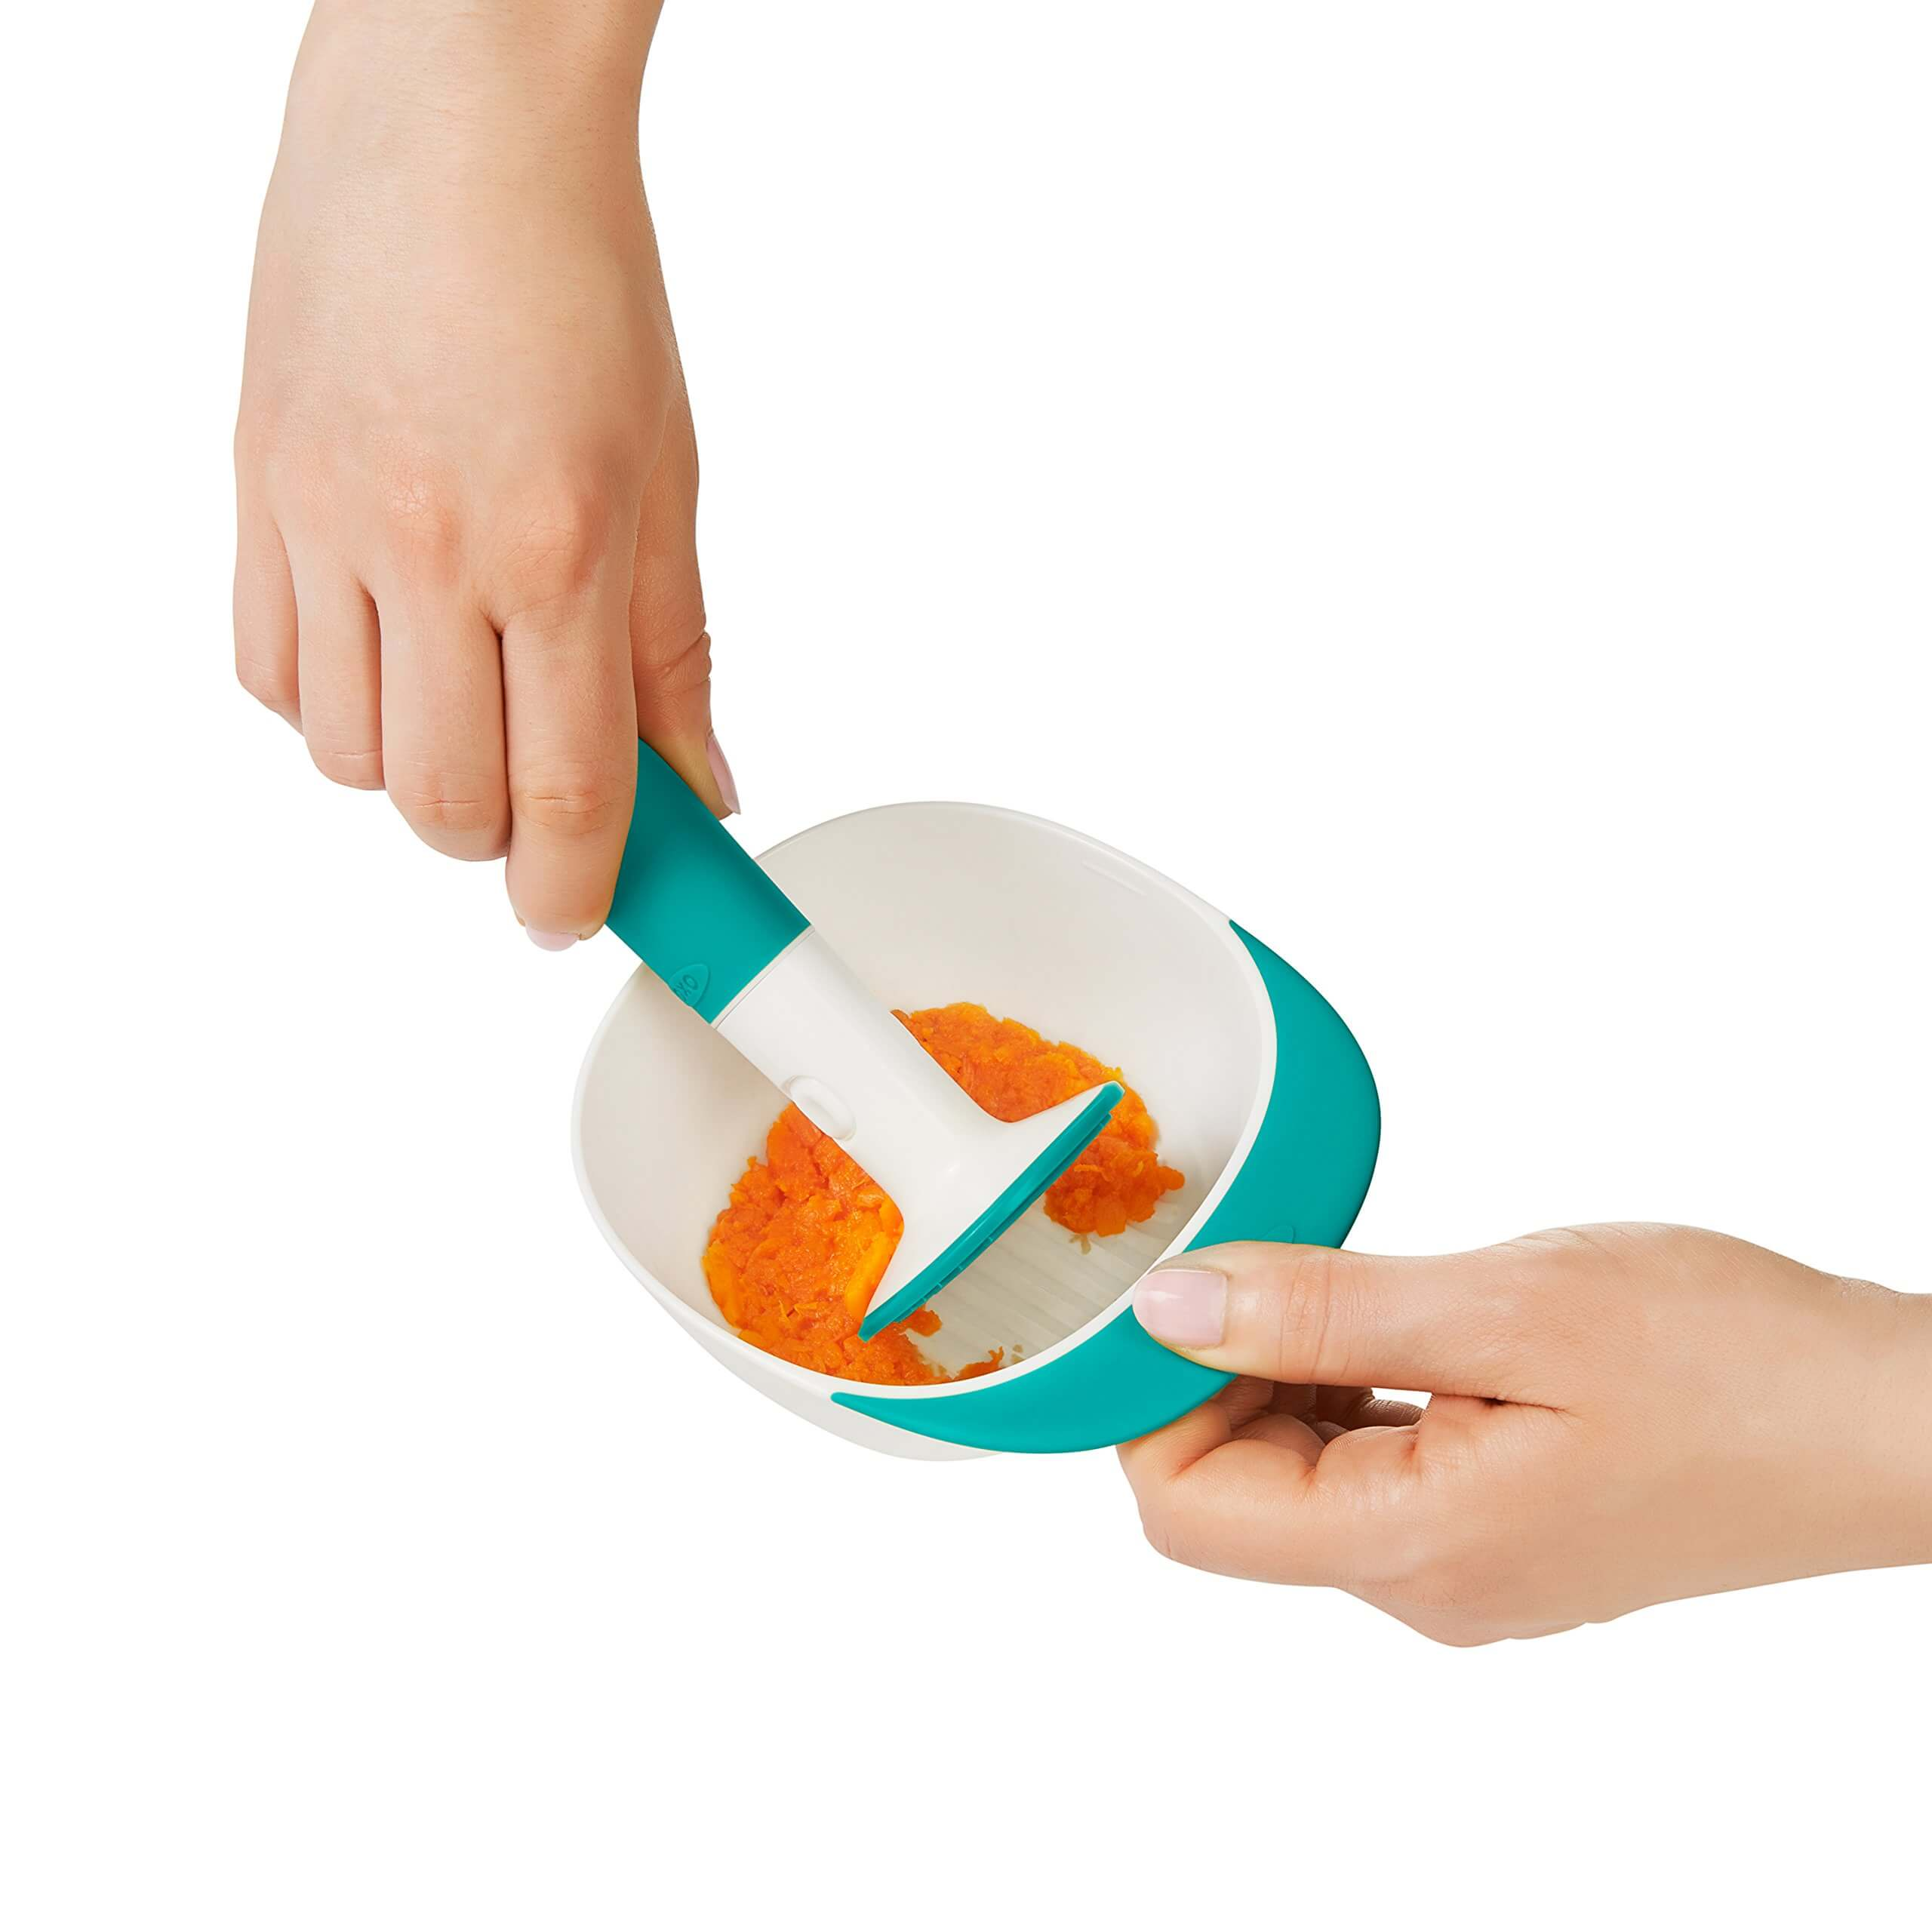 Oxo Tot Food Masher, one step foods, best food processor wirecutter, best blender wirecutter, best way to puree food, Fresh, Healthy and Tasty Baby Food Making, baby food maker